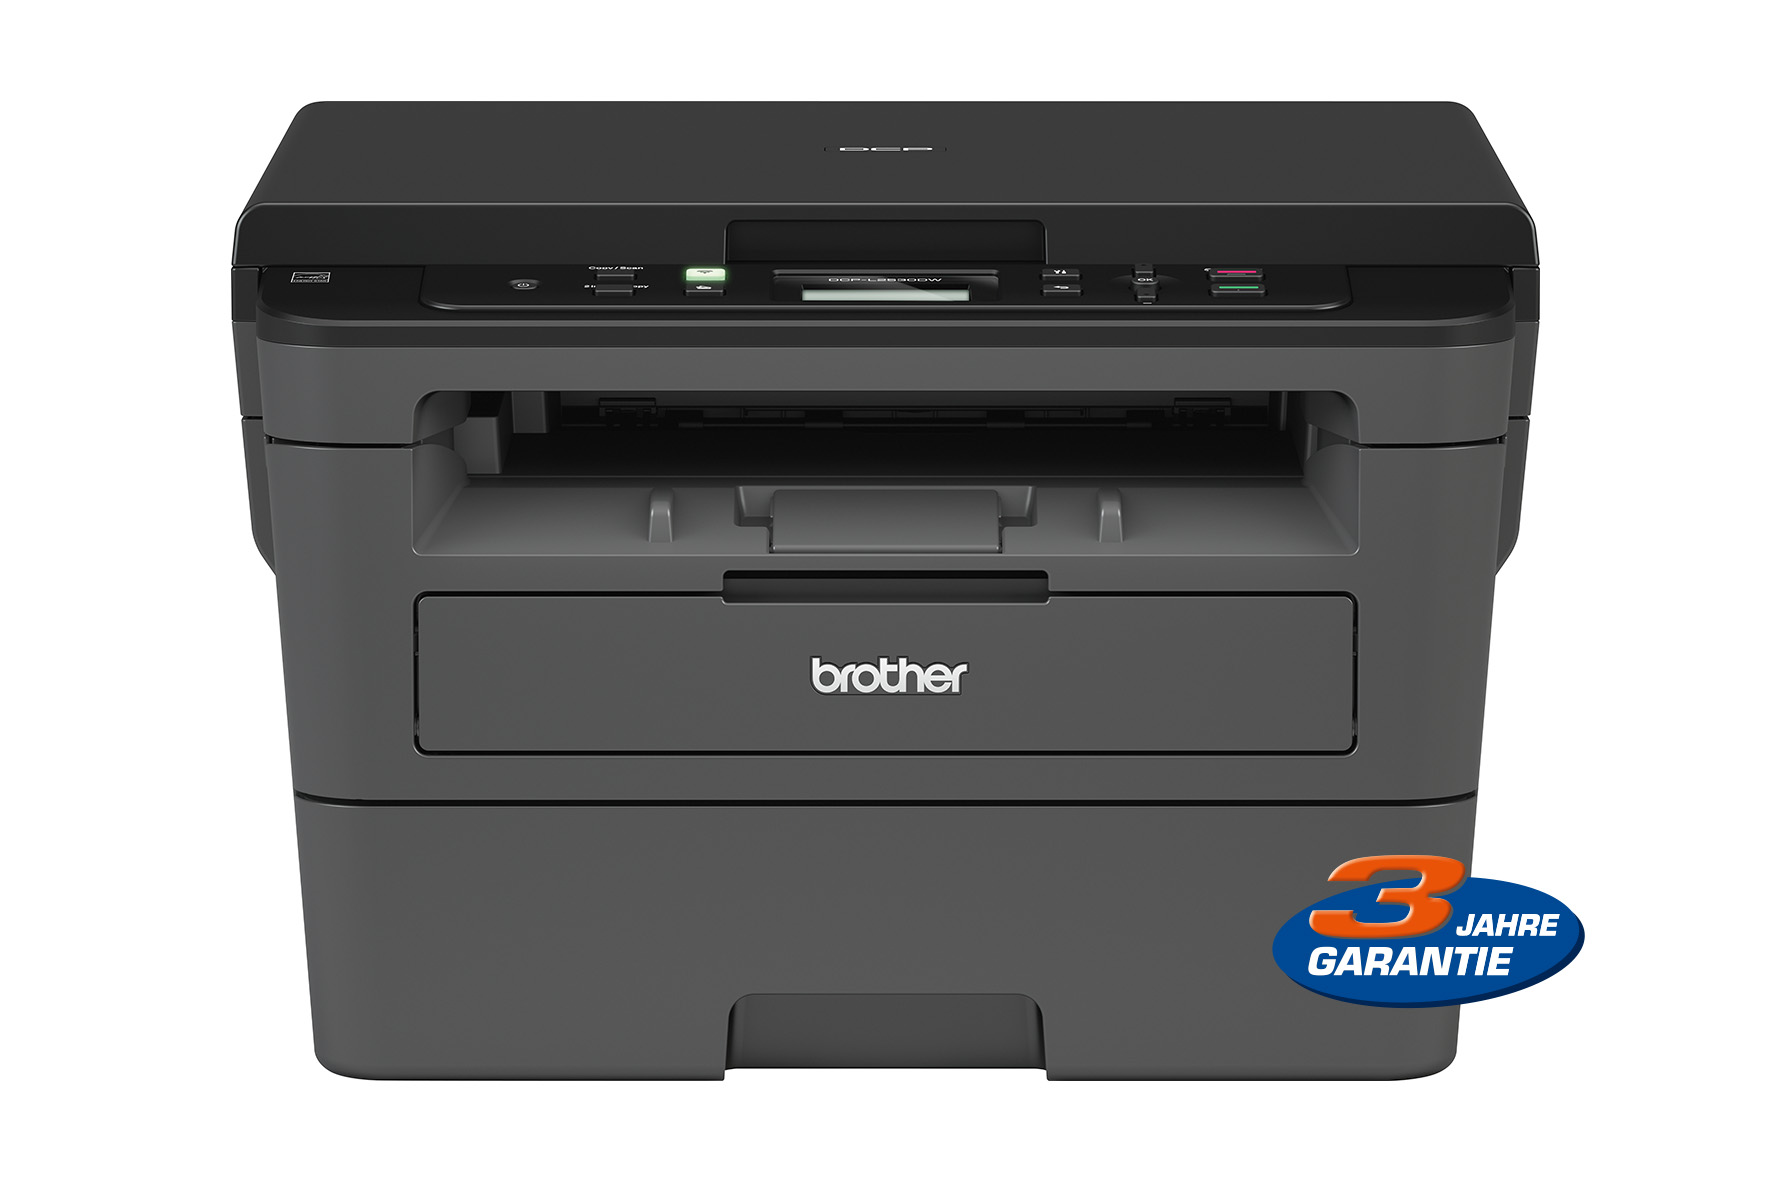 ORIGINAL Brother Drucker  DCP-L2530DW DCPL2530DWG1 Brother HL-L8260CDW  S/W Laser-Multifunktionsdrucker